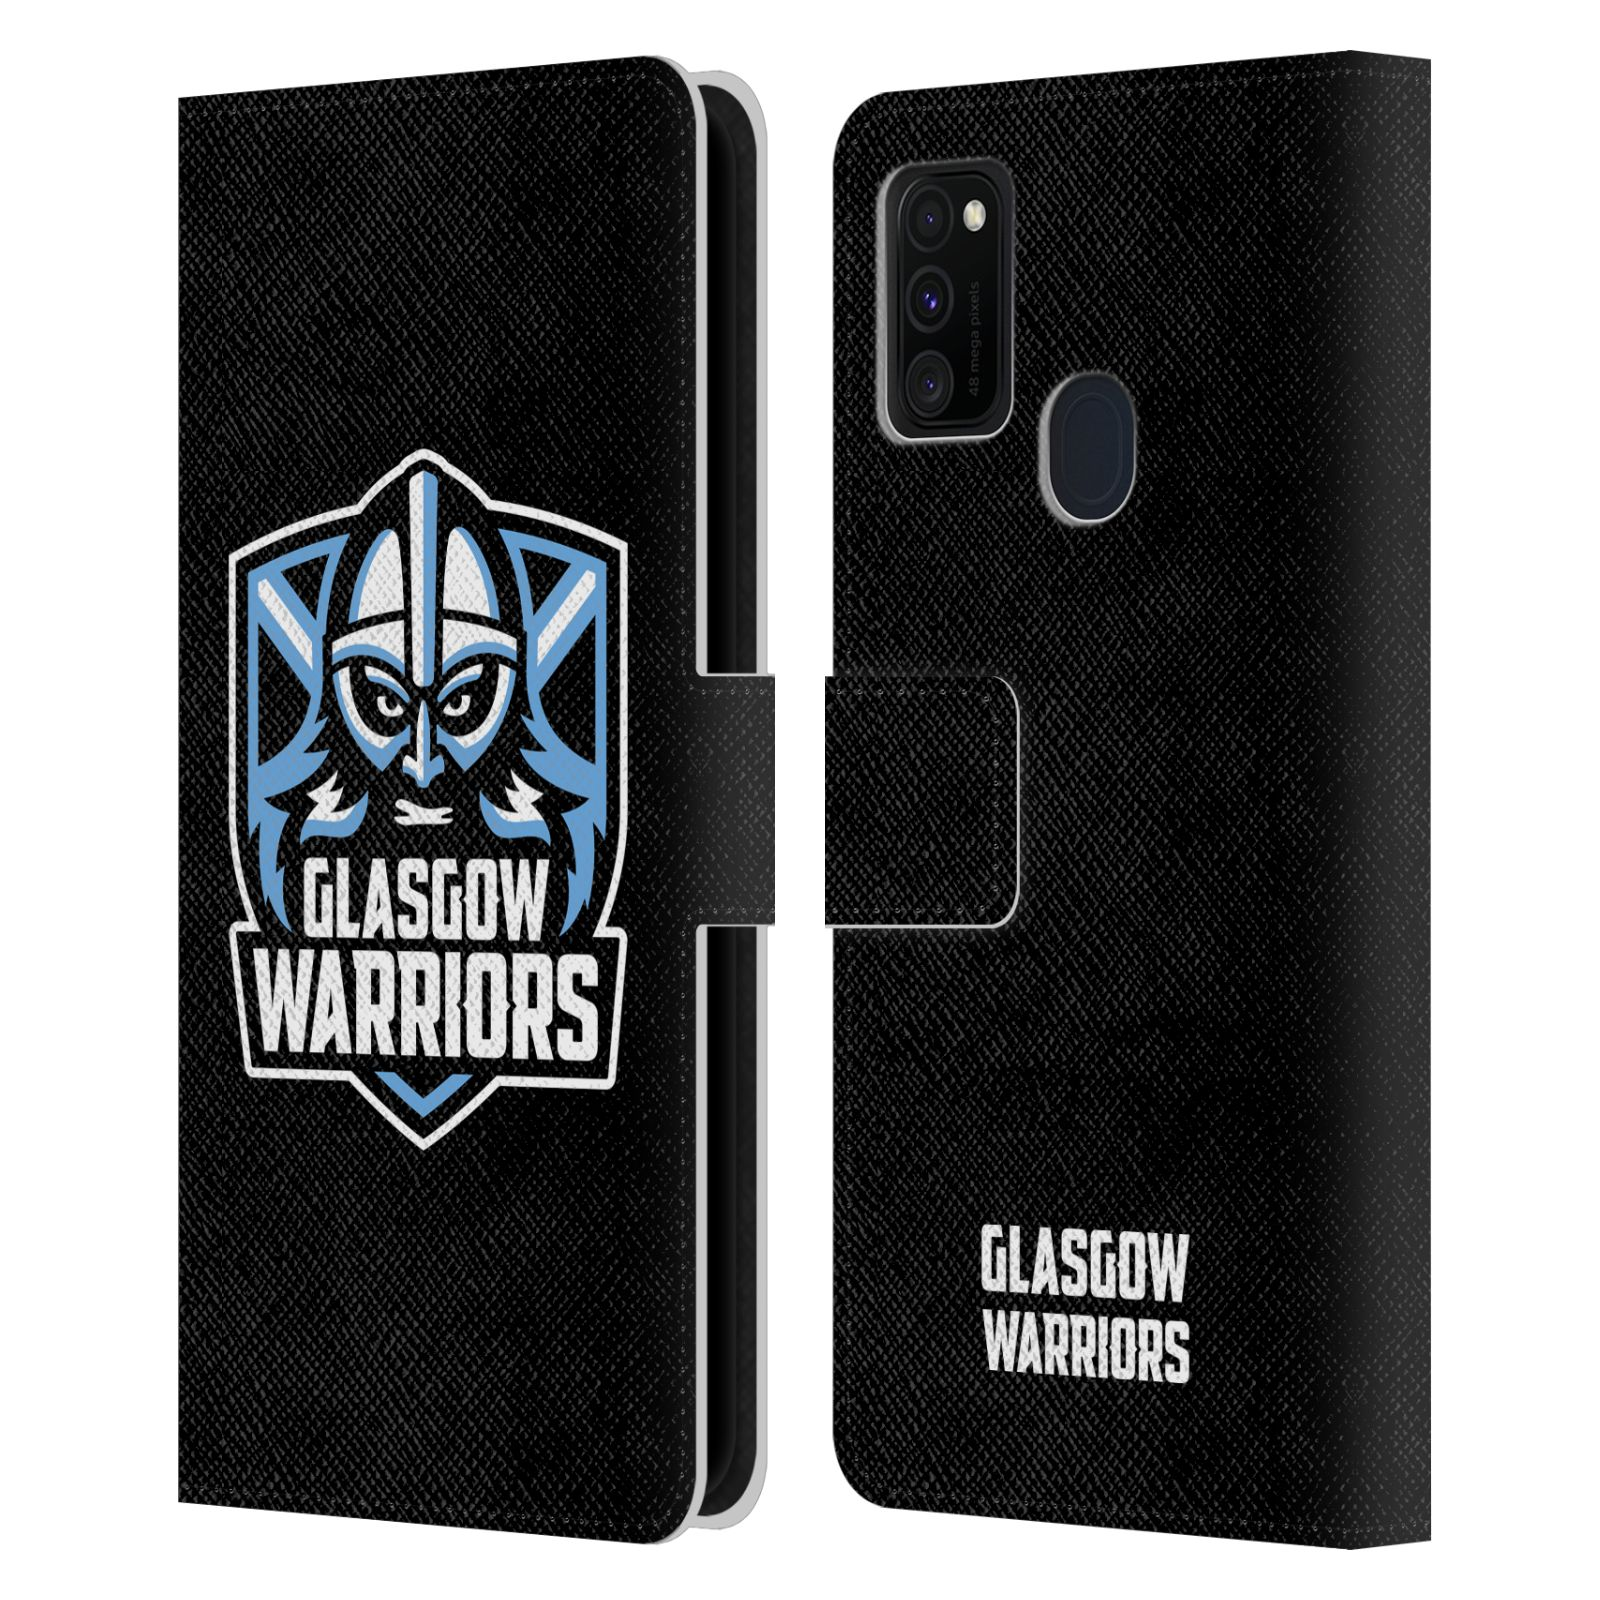 Official Glasgow Warriors 2019/20 Logo Art Plain Black Leather Book Wallet Case For Samsung Galaxy M30s (2019)